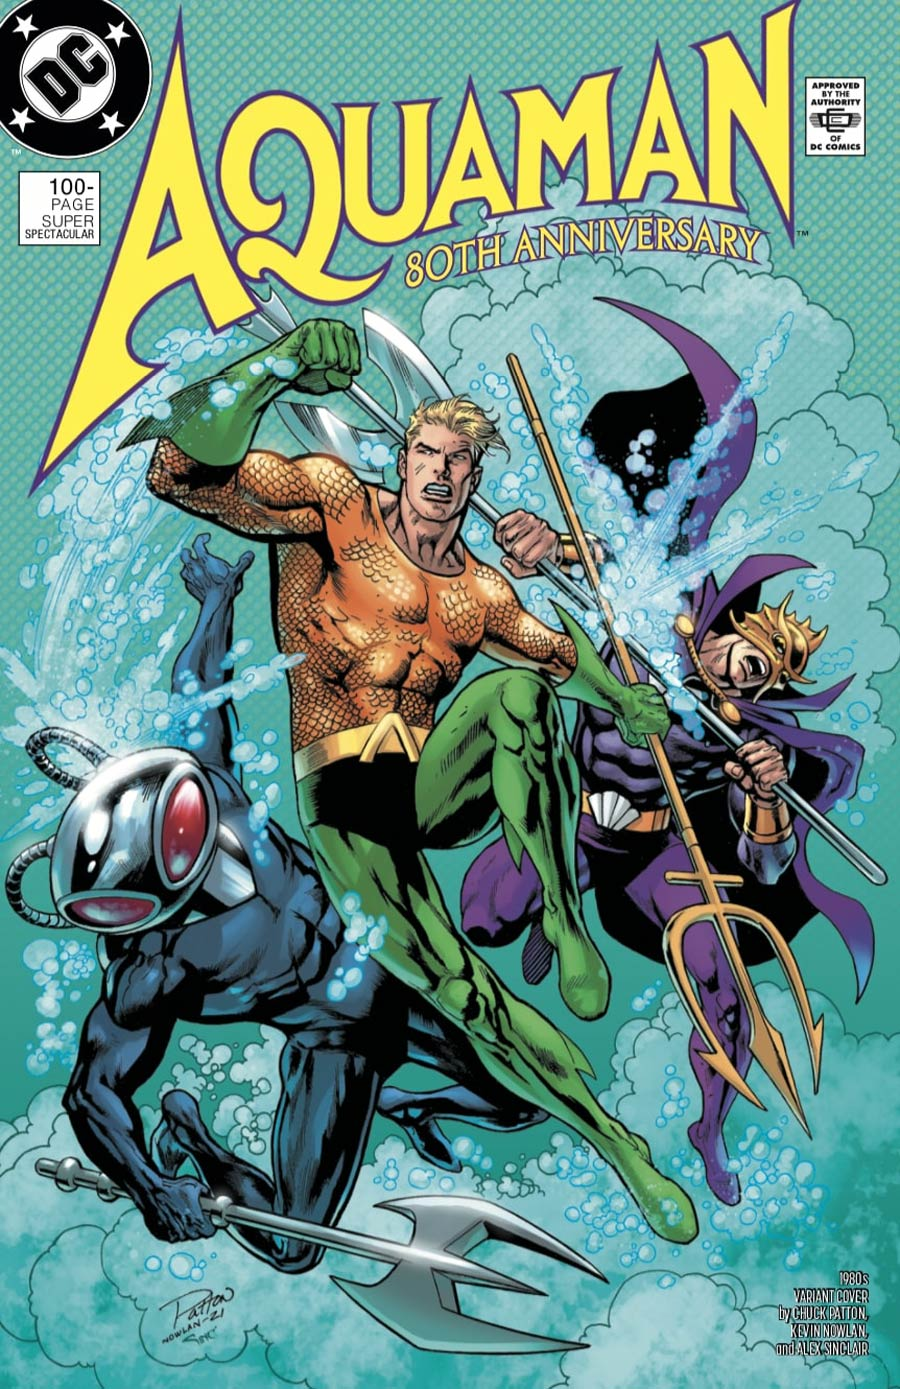 Aquaman-80th-Anniversary-100-Page-Spectacular-1-spoilers-0-6-1980s Aquaman-80th-Anniversary-100-Page-Spectacular-1-spoilers-0-6-1980s